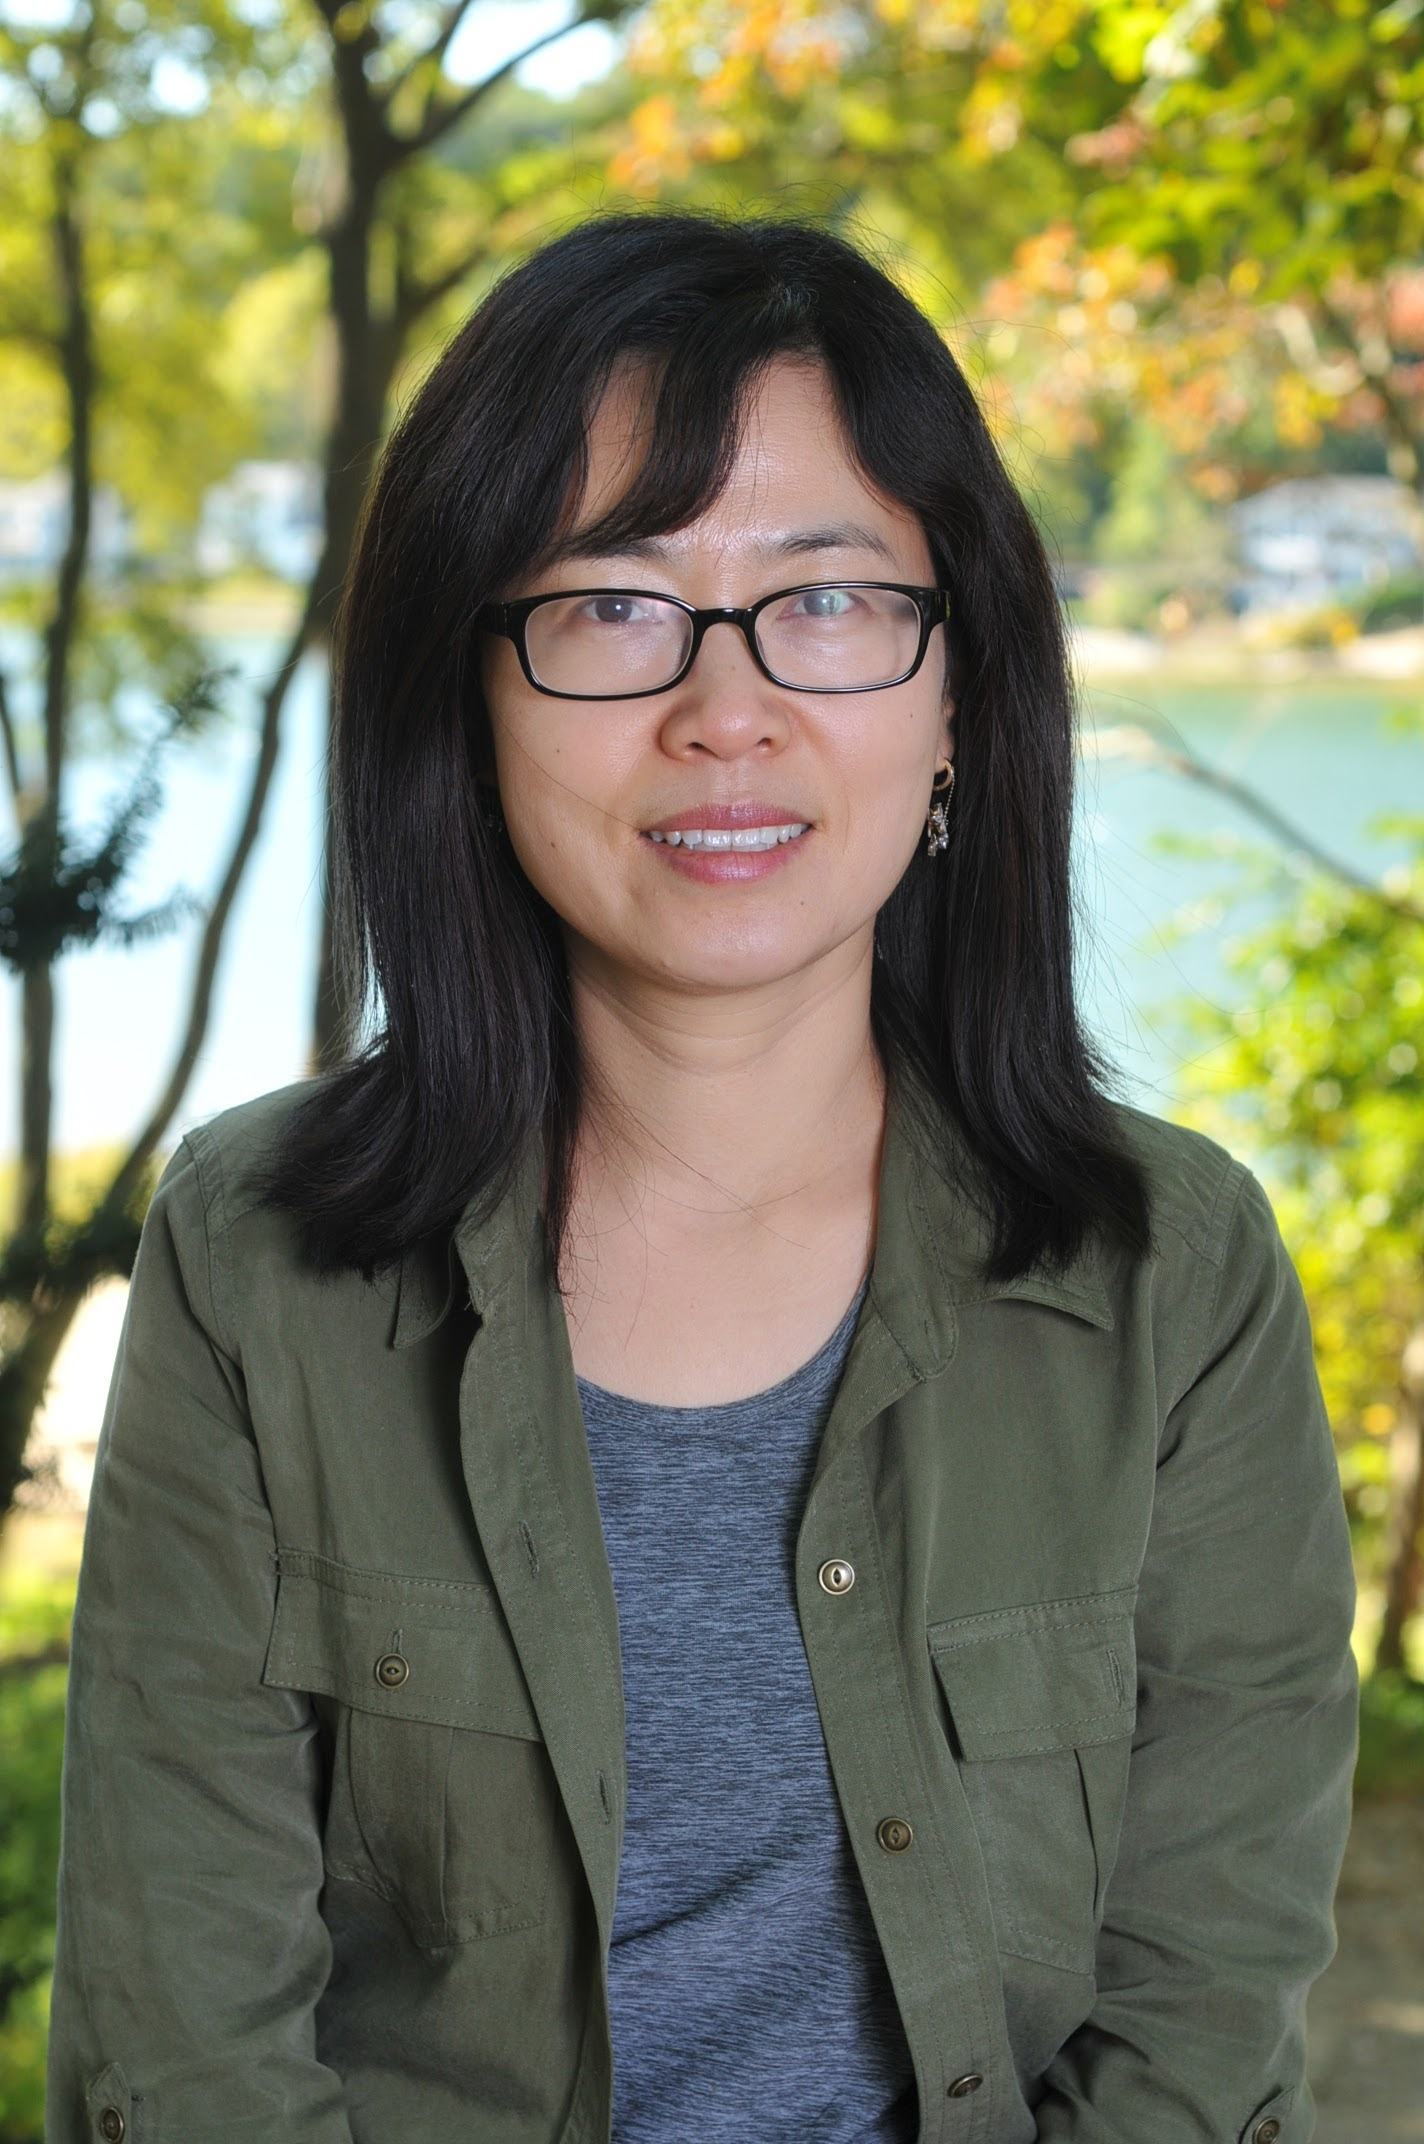 Soo-Jung Kim, Early Childhood Teacher    years at lol:  10 years   experience:  ams early childhood credential from west side montessori school's teacher education program, ba in english language education from korea university, EFL (English as a Foreign Language) teacher certification in Korea